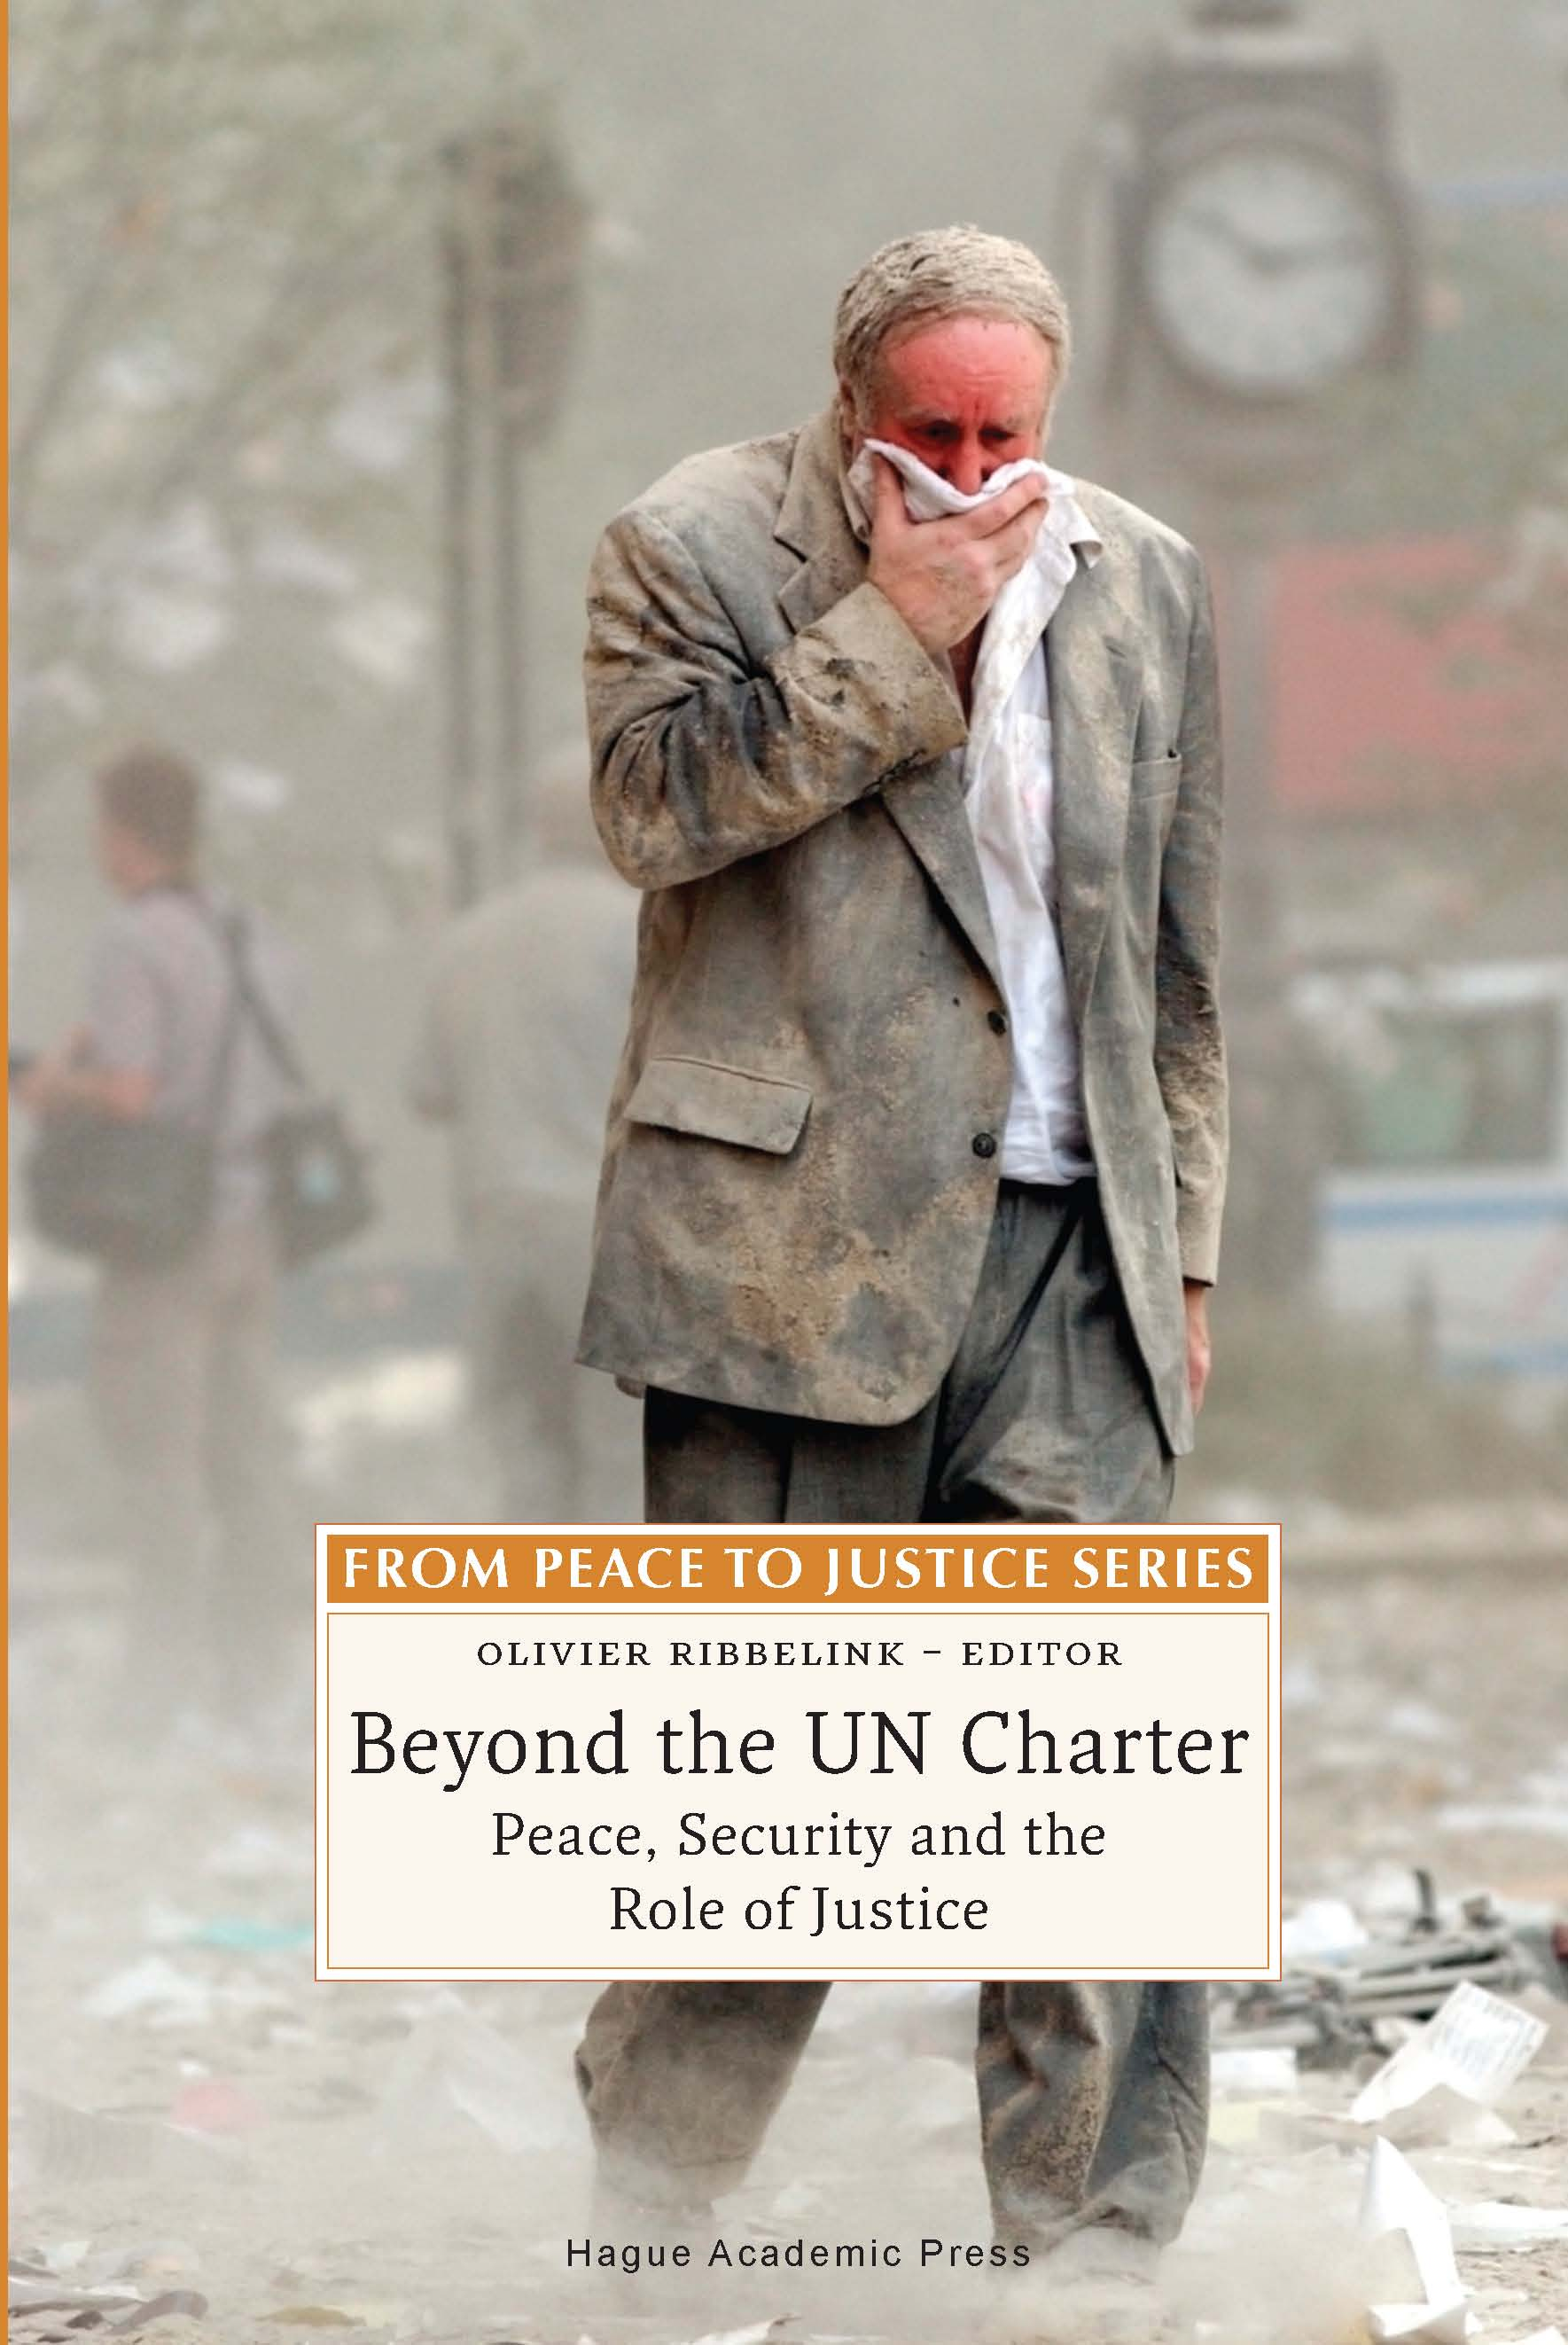 Beyond the UN Charter - Peace, Security and the Role of Justice